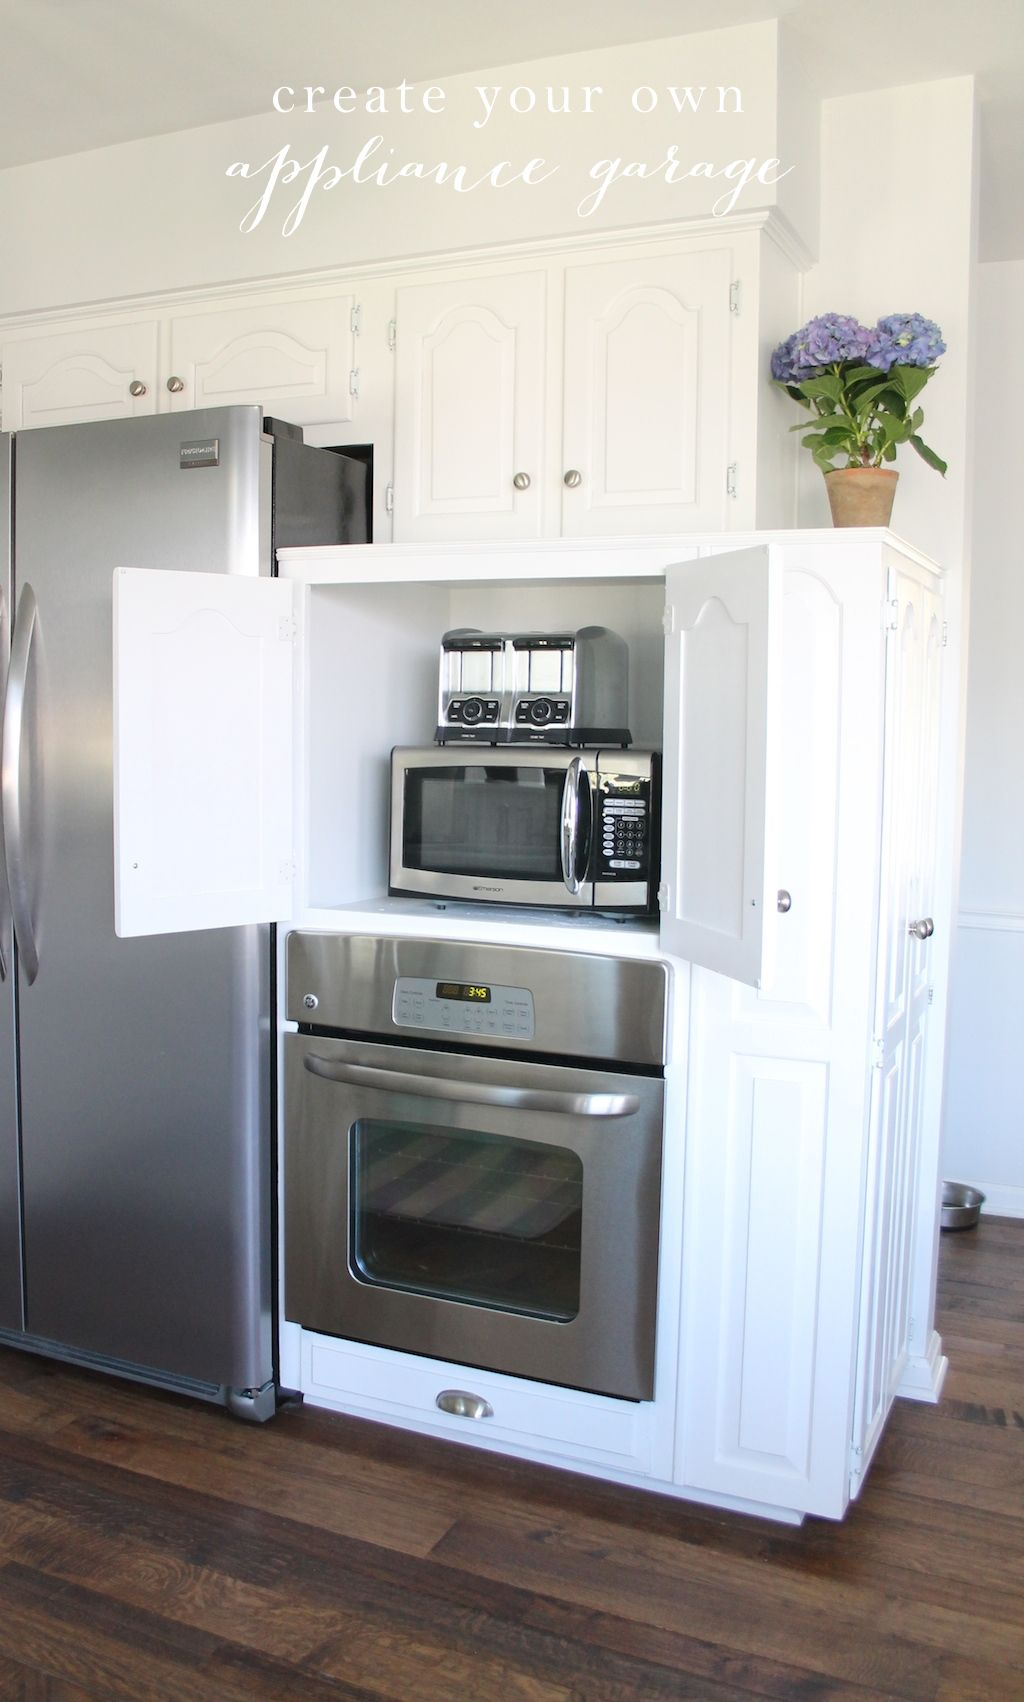 Hide your kitchen appliances  maximize storage with this